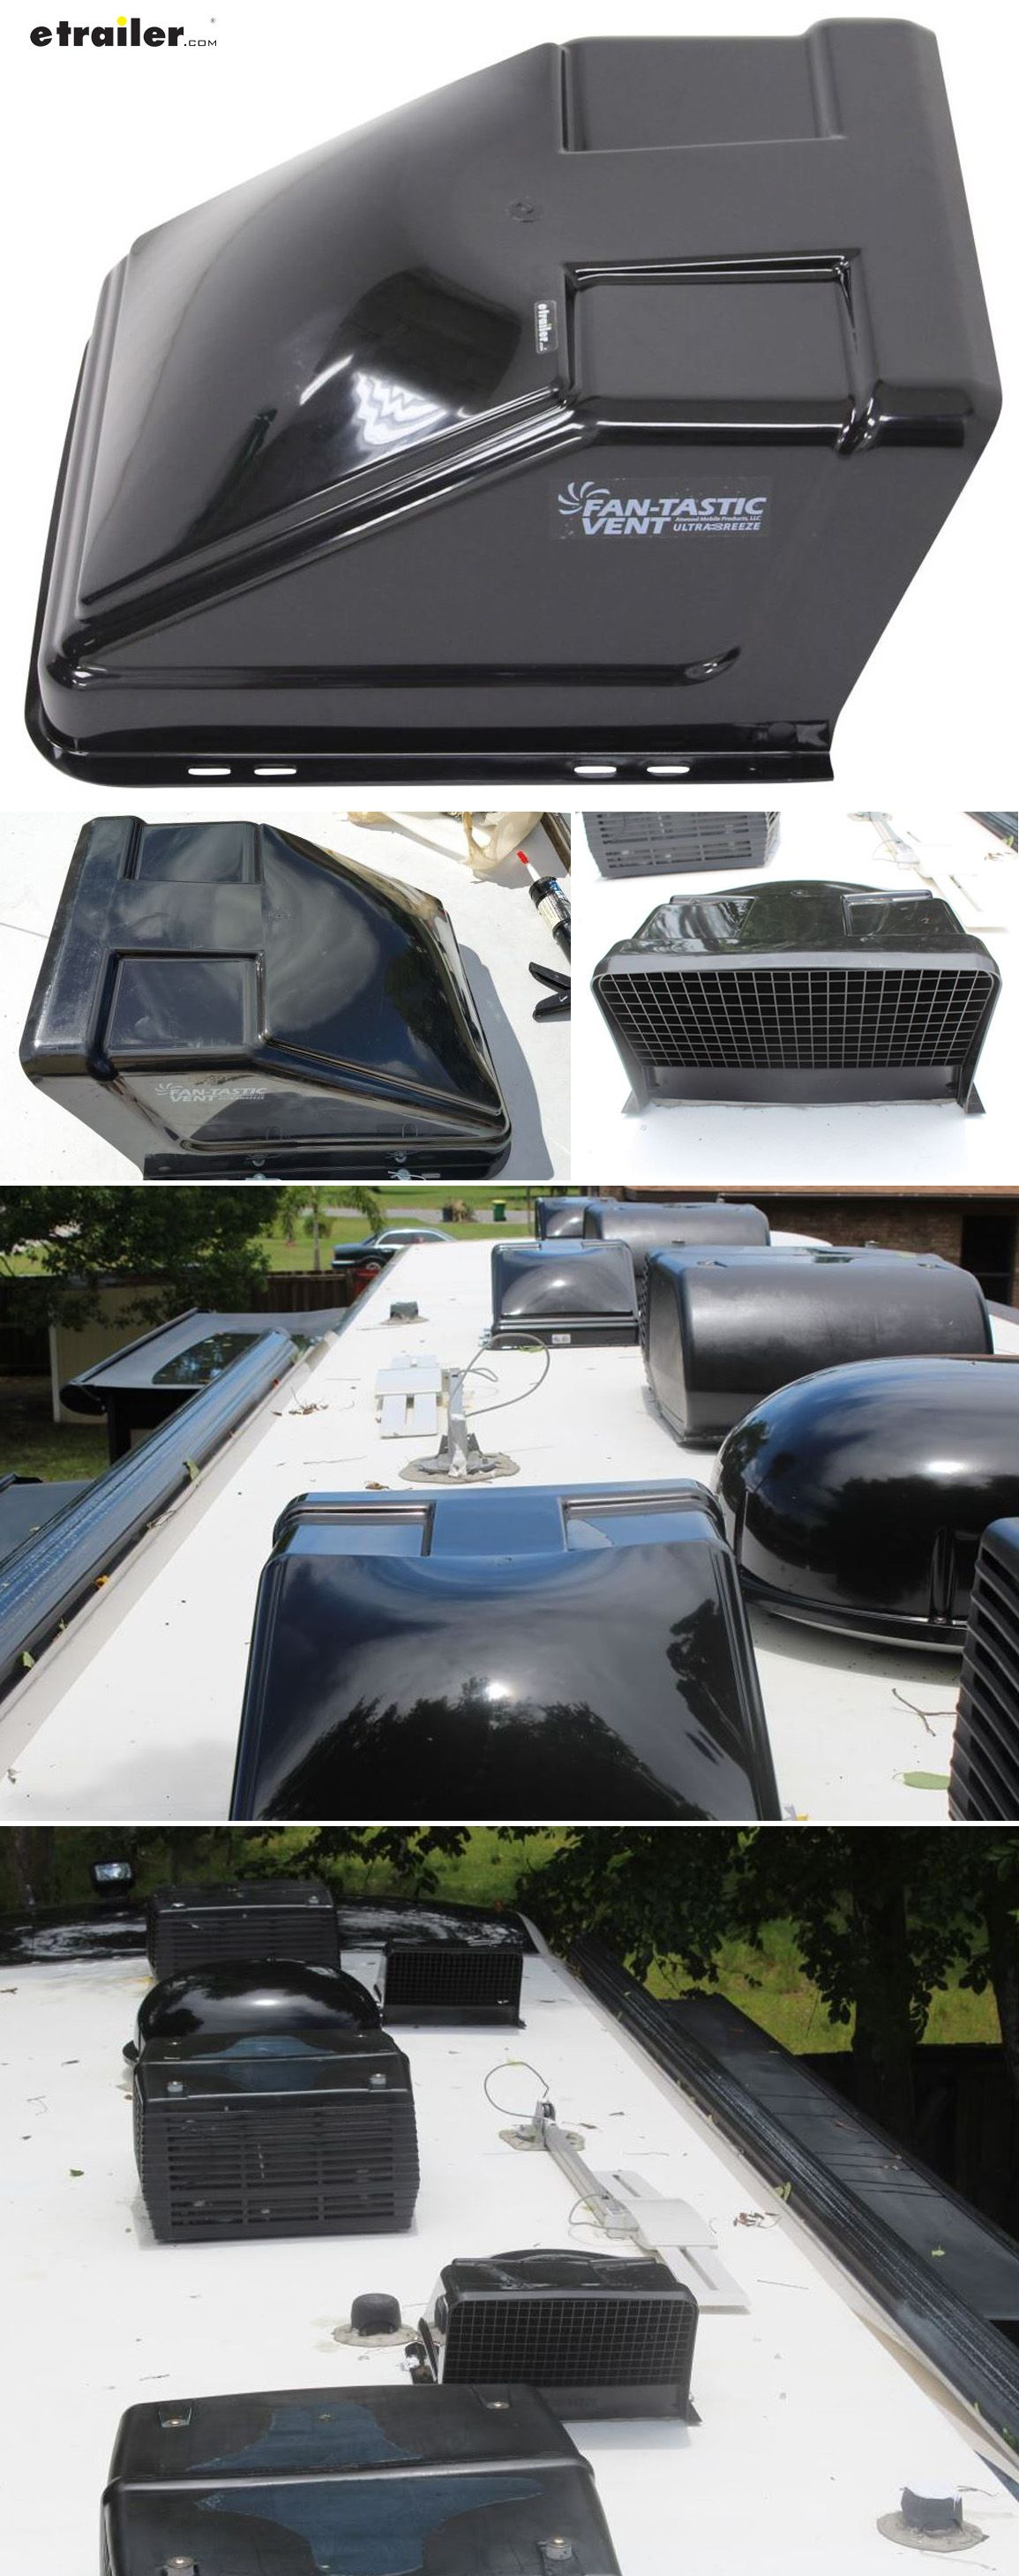 FanTastic Vent Ultra Breeze Trailer Roof Vent Cover 23